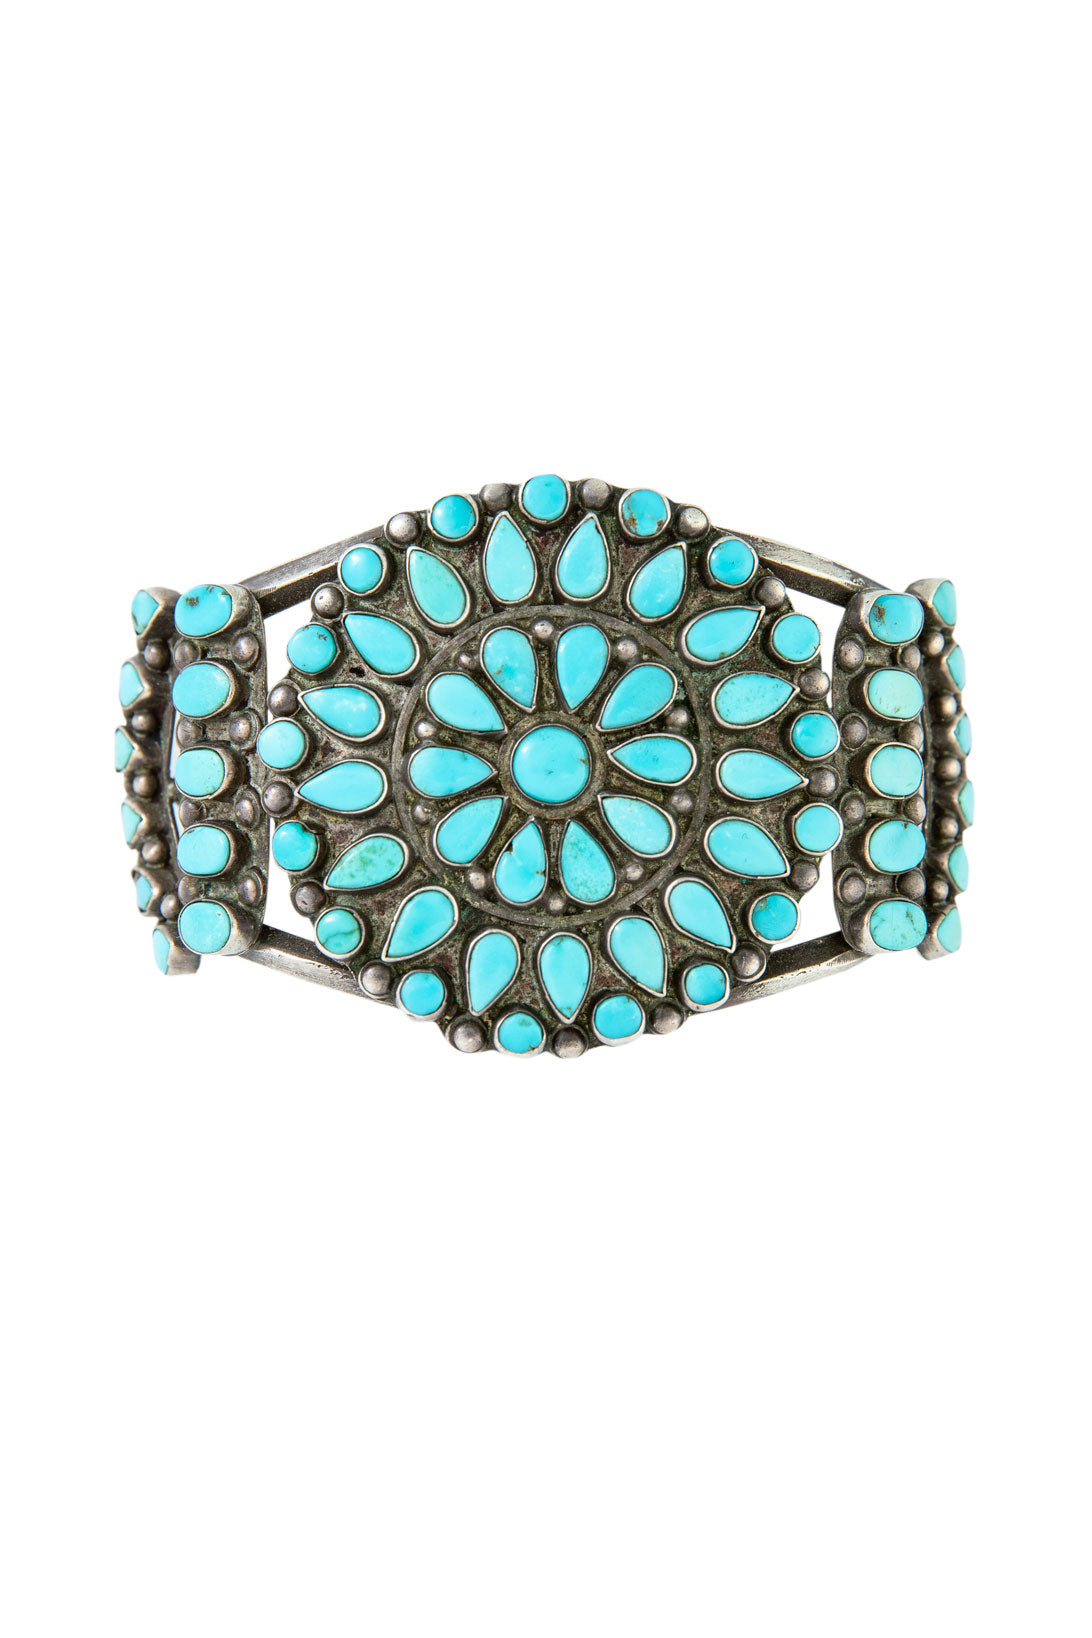 Cuff, Cluster, Turquoise, Vintage, 2419